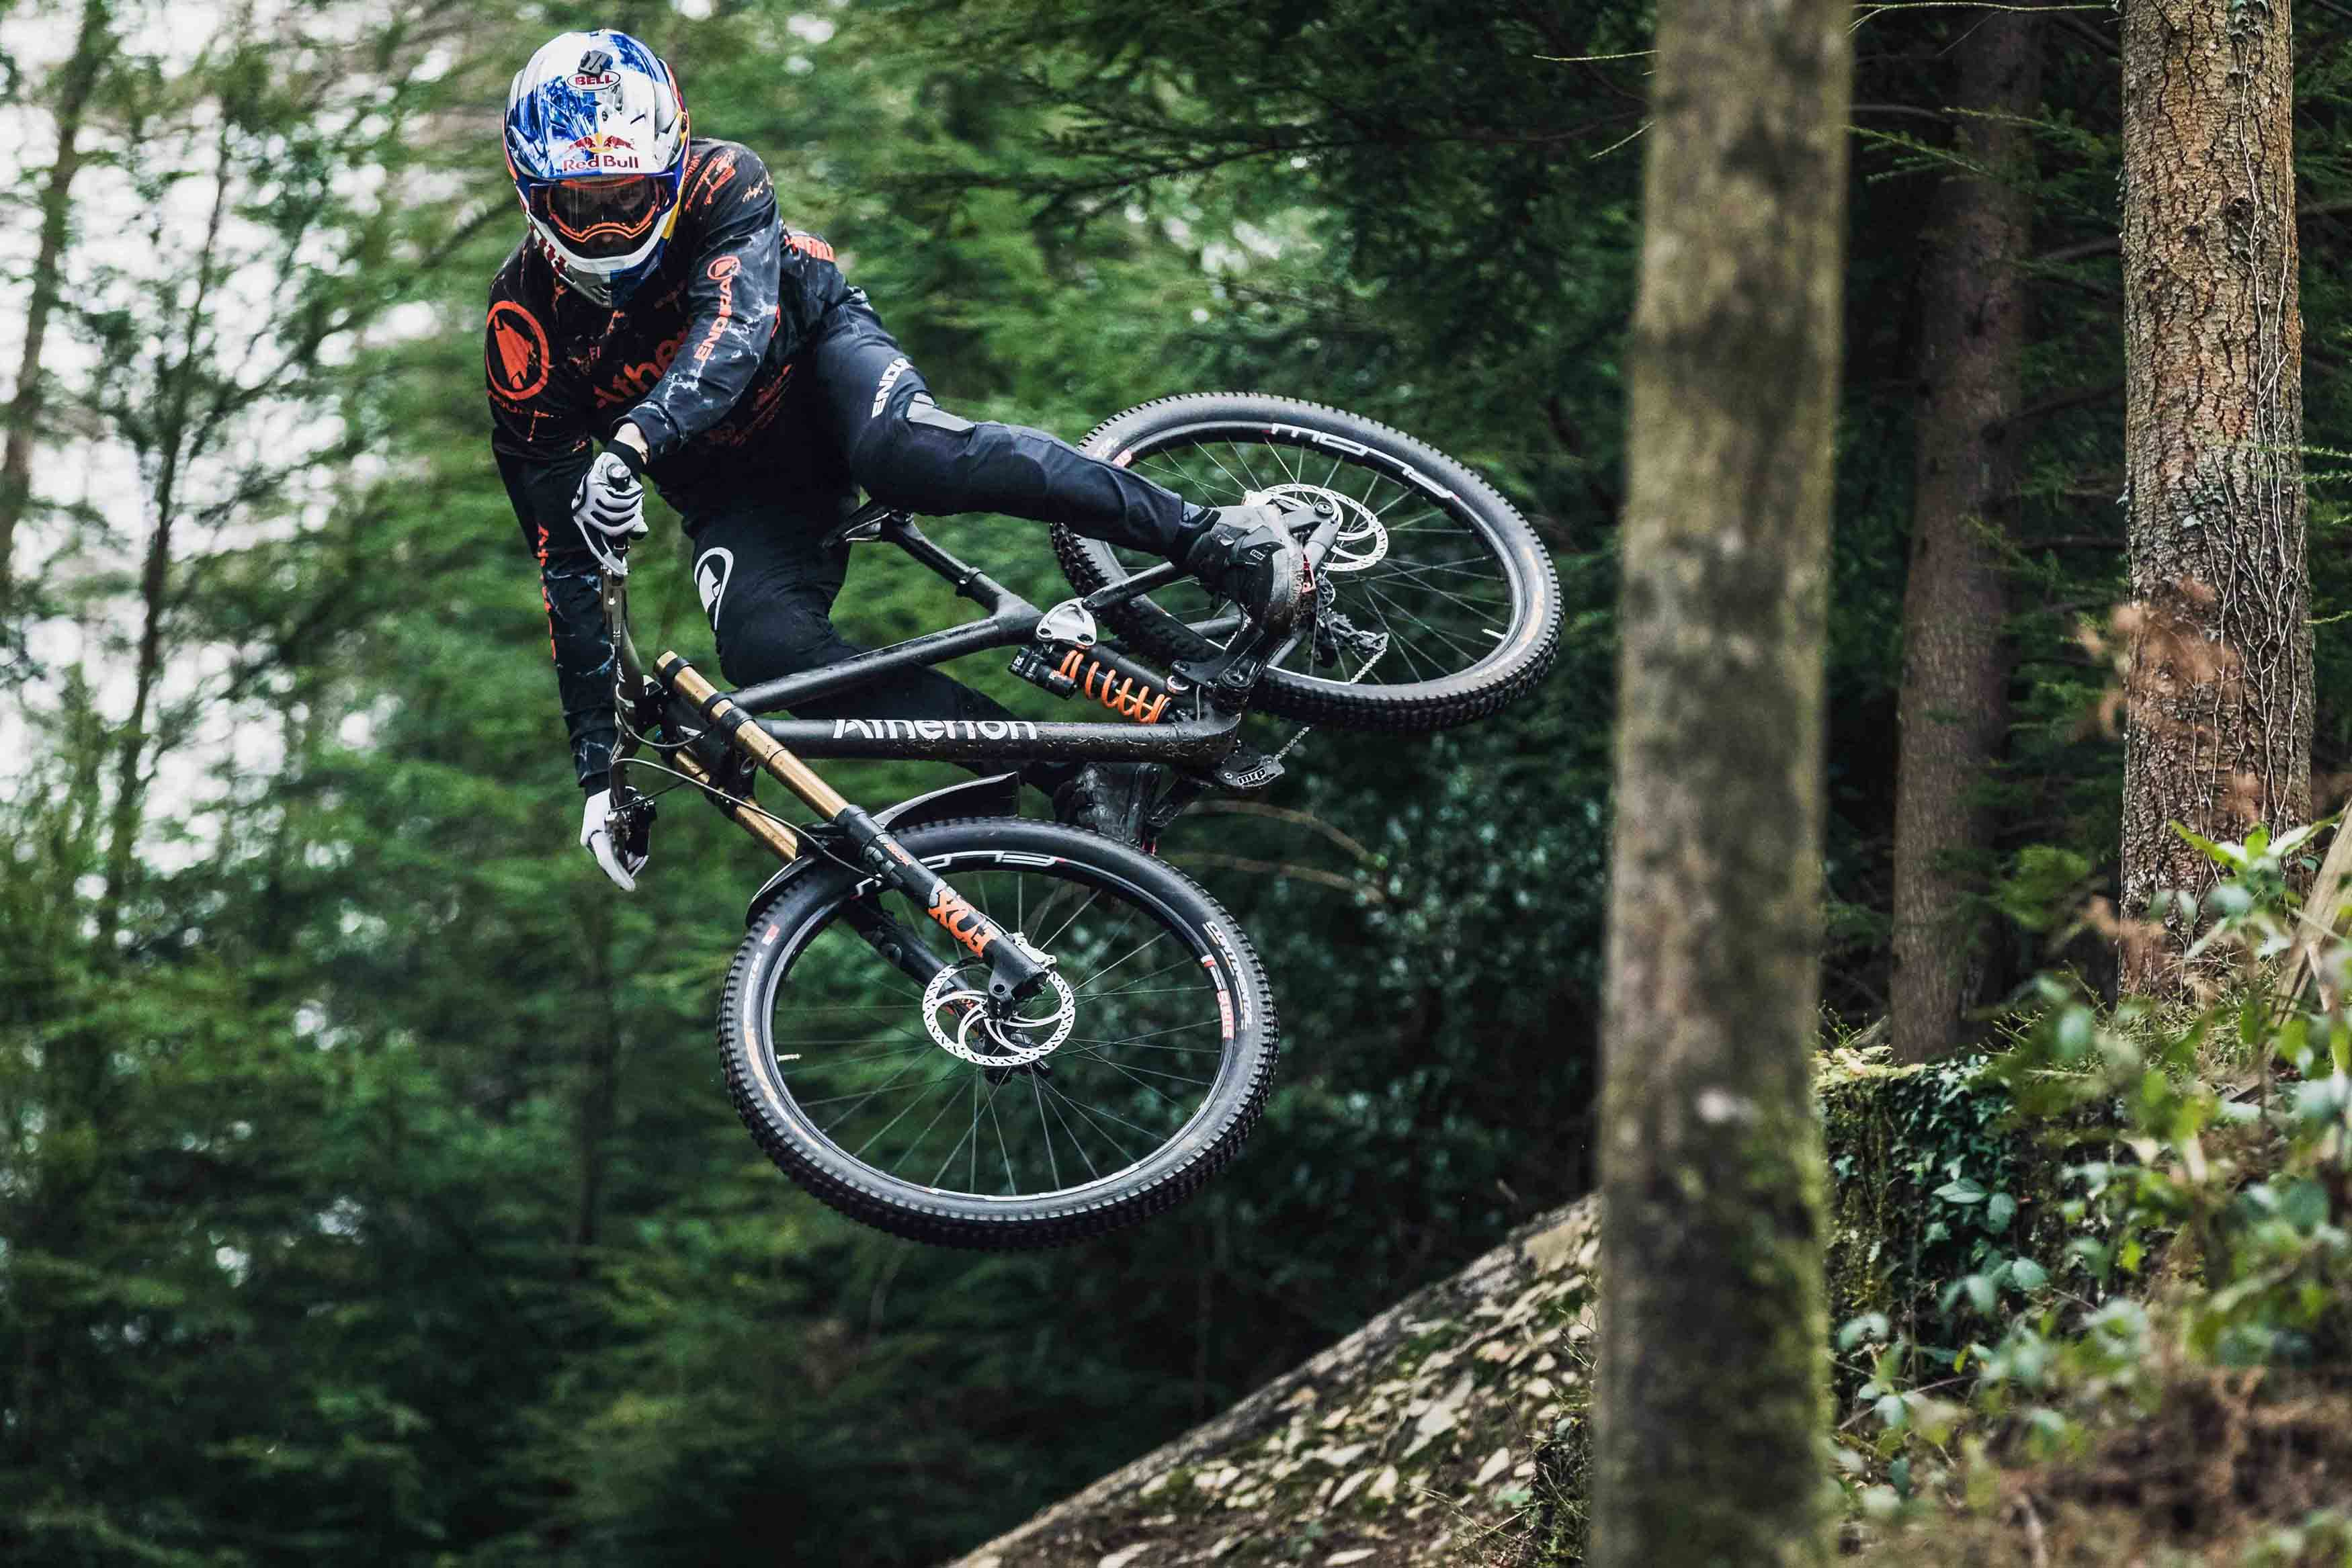 Renishaw_Atherton_Racing.jpg